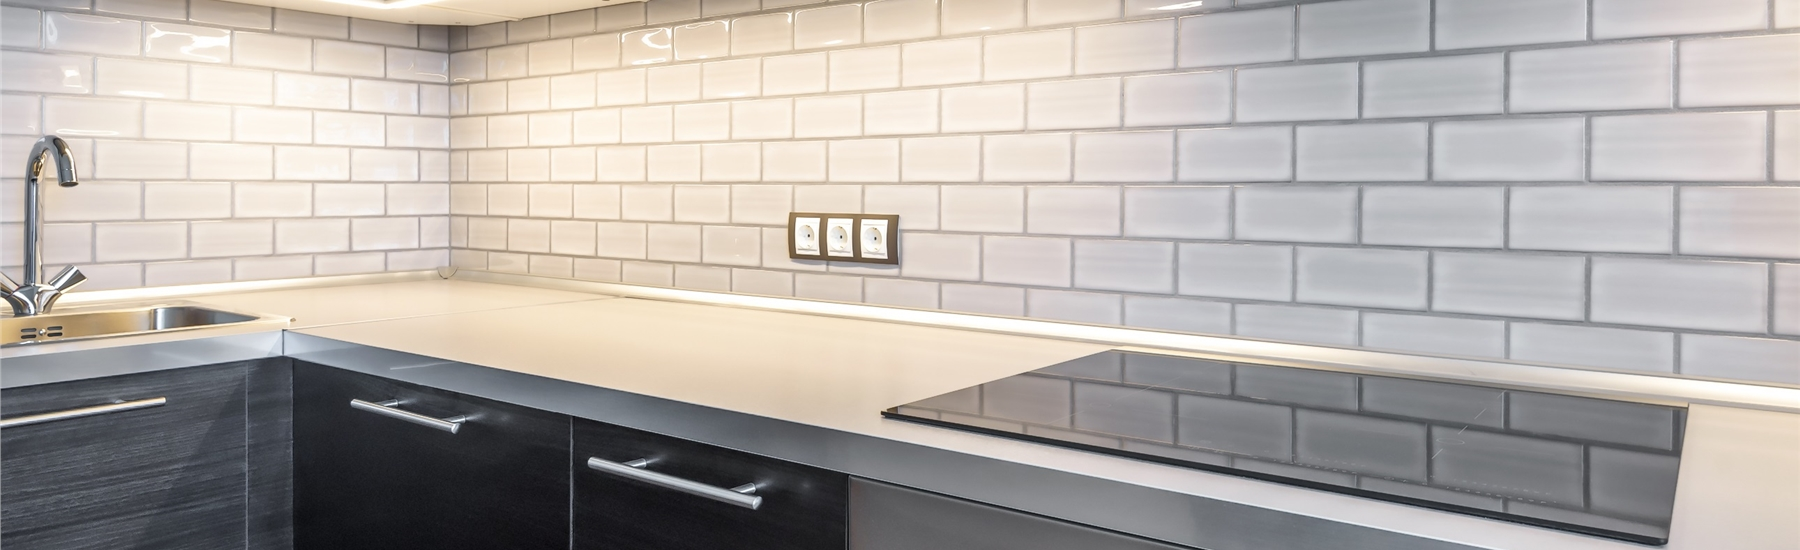 white tile kitchen splashback